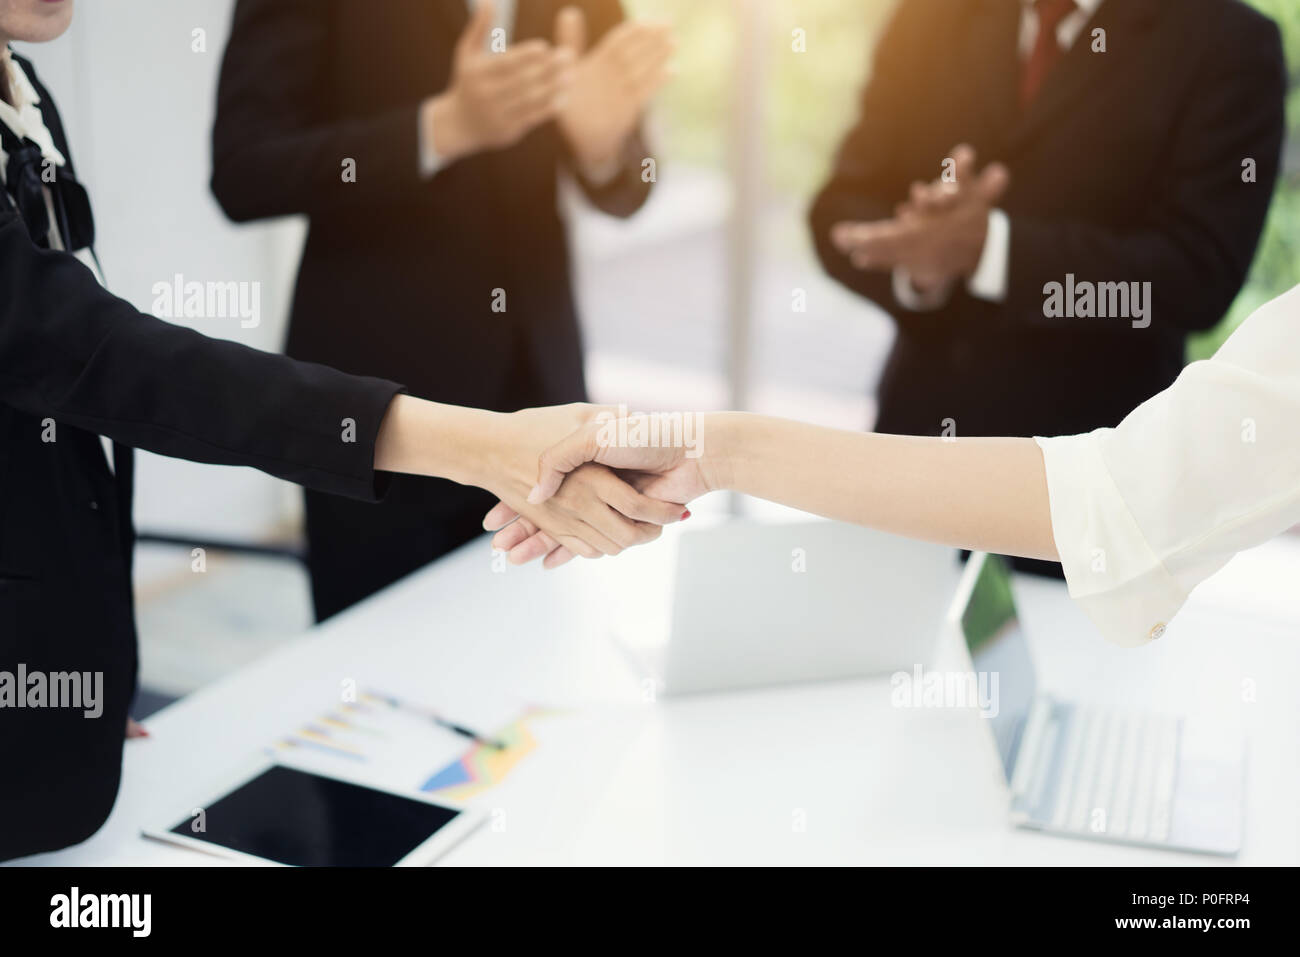 Business people shaking hands, finishing up a meeting to seal a deal with his partner business with colleague clap hands to congrats. - Stock Image